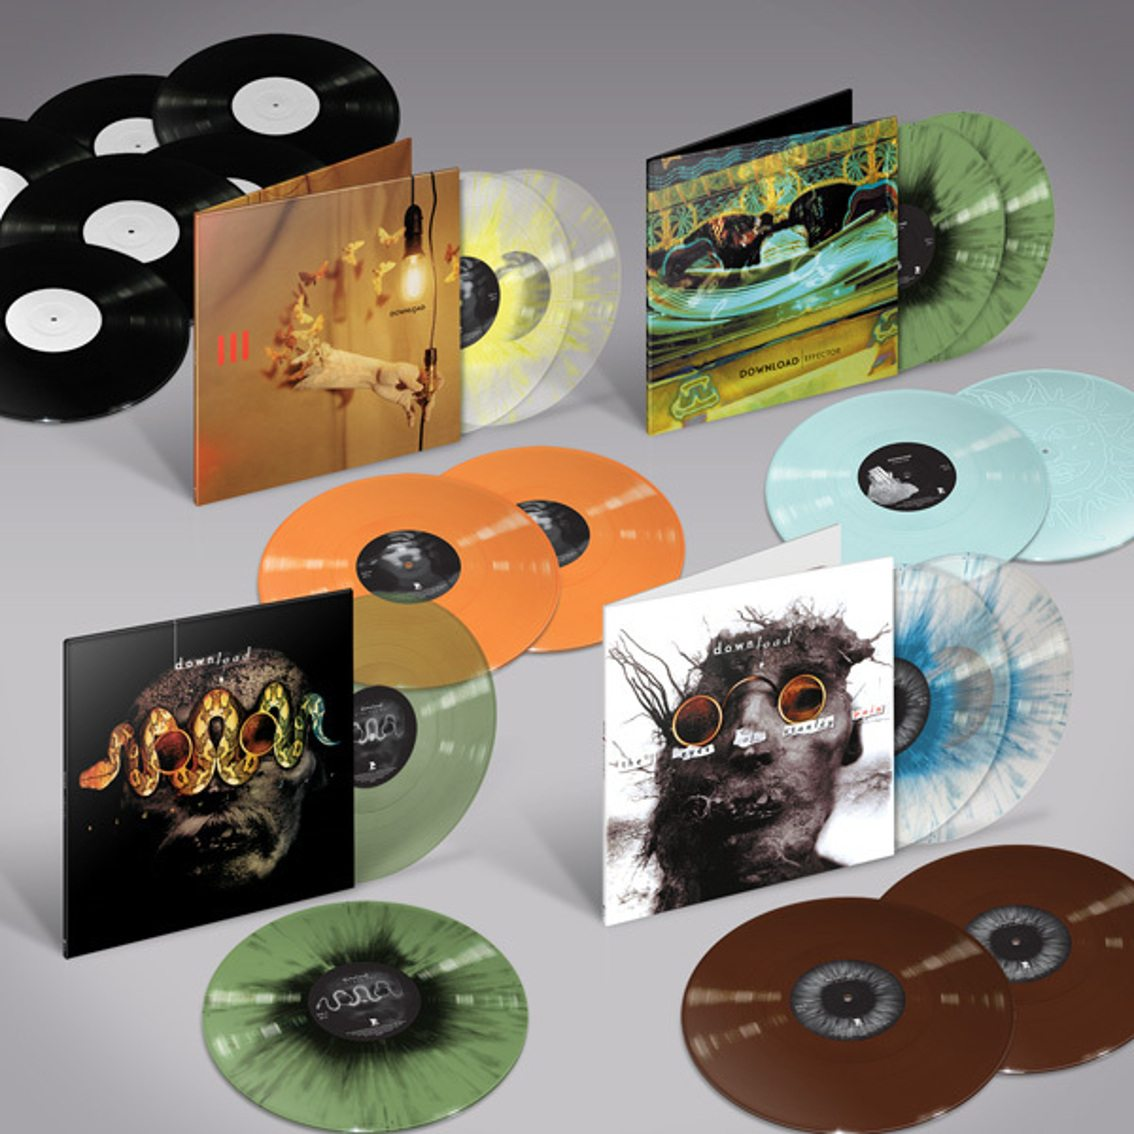 Skinny Puppy fans, attention! Massive reissue campaign for Download (Skinny Puppy's Cevin Key) and Phil Western on ltd ed coloured vinyl - pre-orders available now